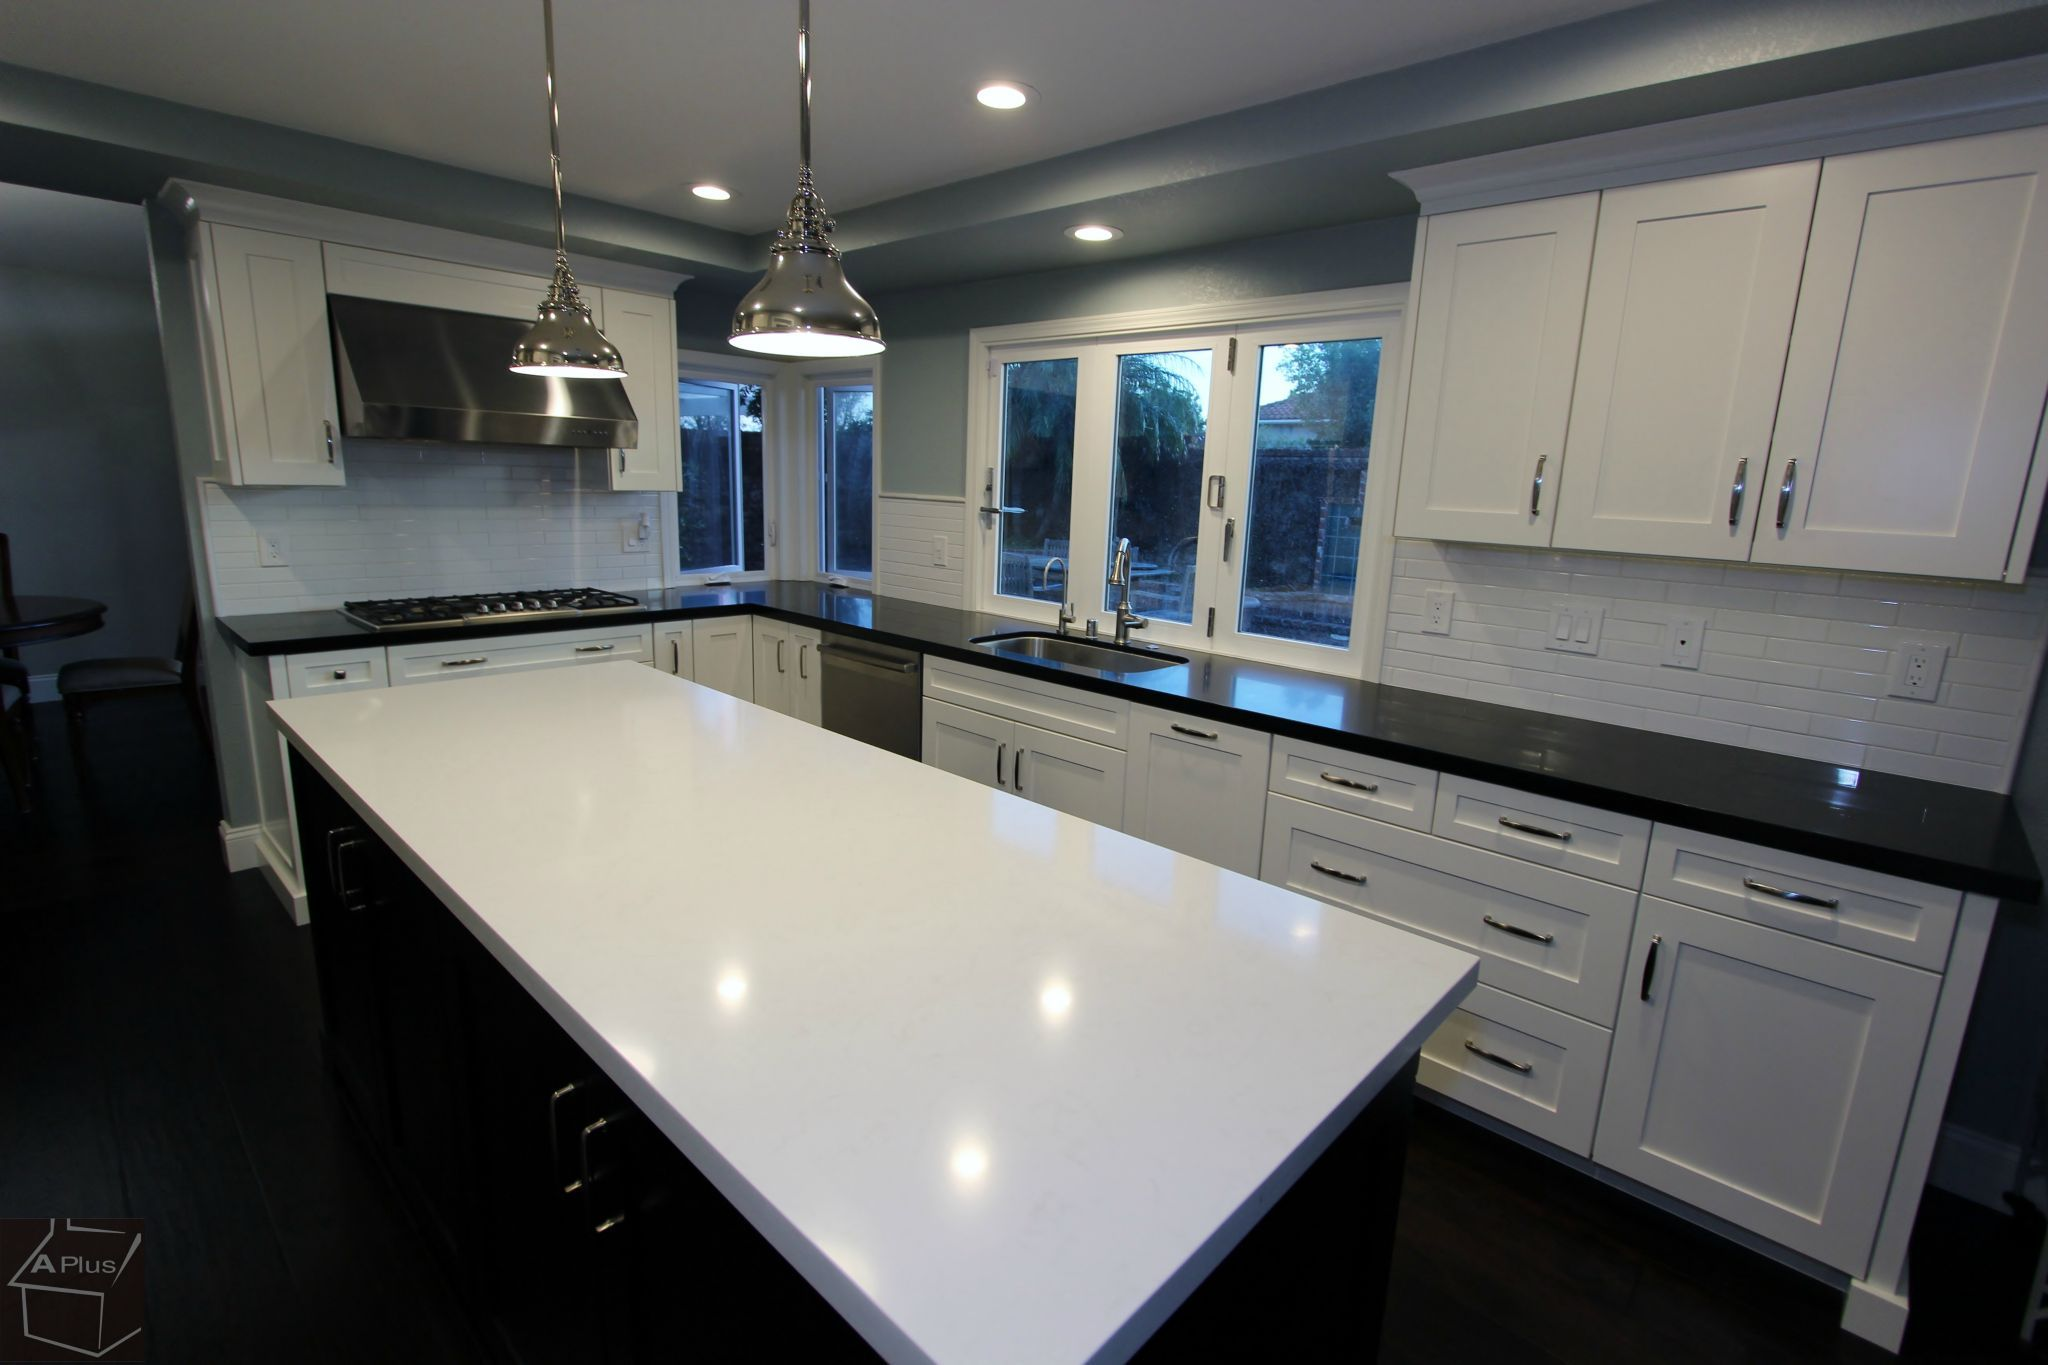 Design Build Transitional Style Home U0026 #Kitchen #Remodel With #Custom # Cabinets In Irvine Orange County